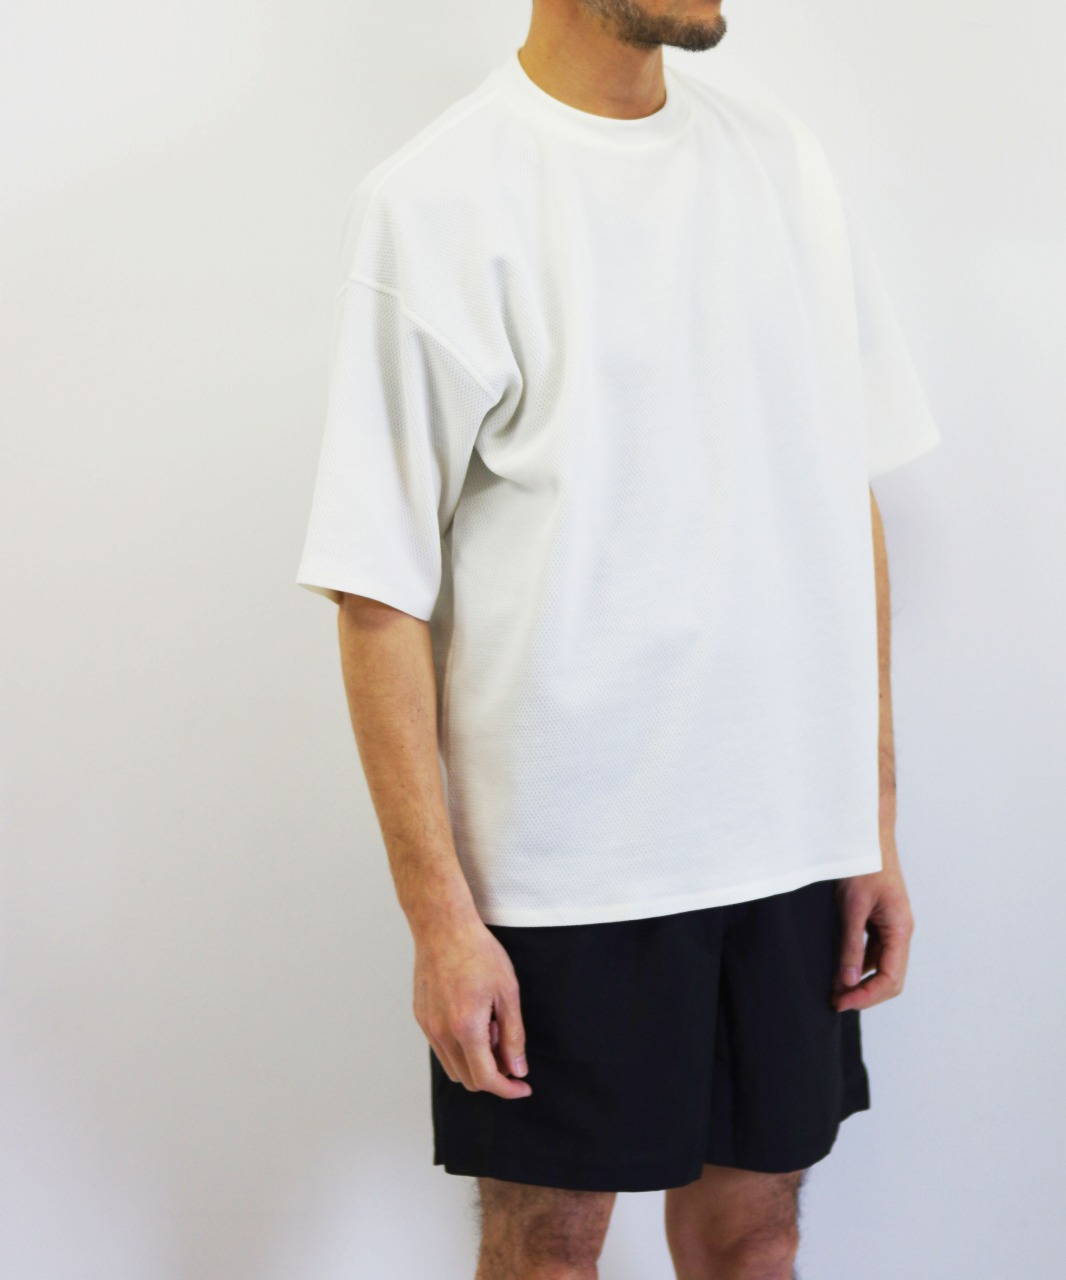 DESCENTE PAUSE/デサント ポーズ THERMAL BIG T-SHIRT (全3色)